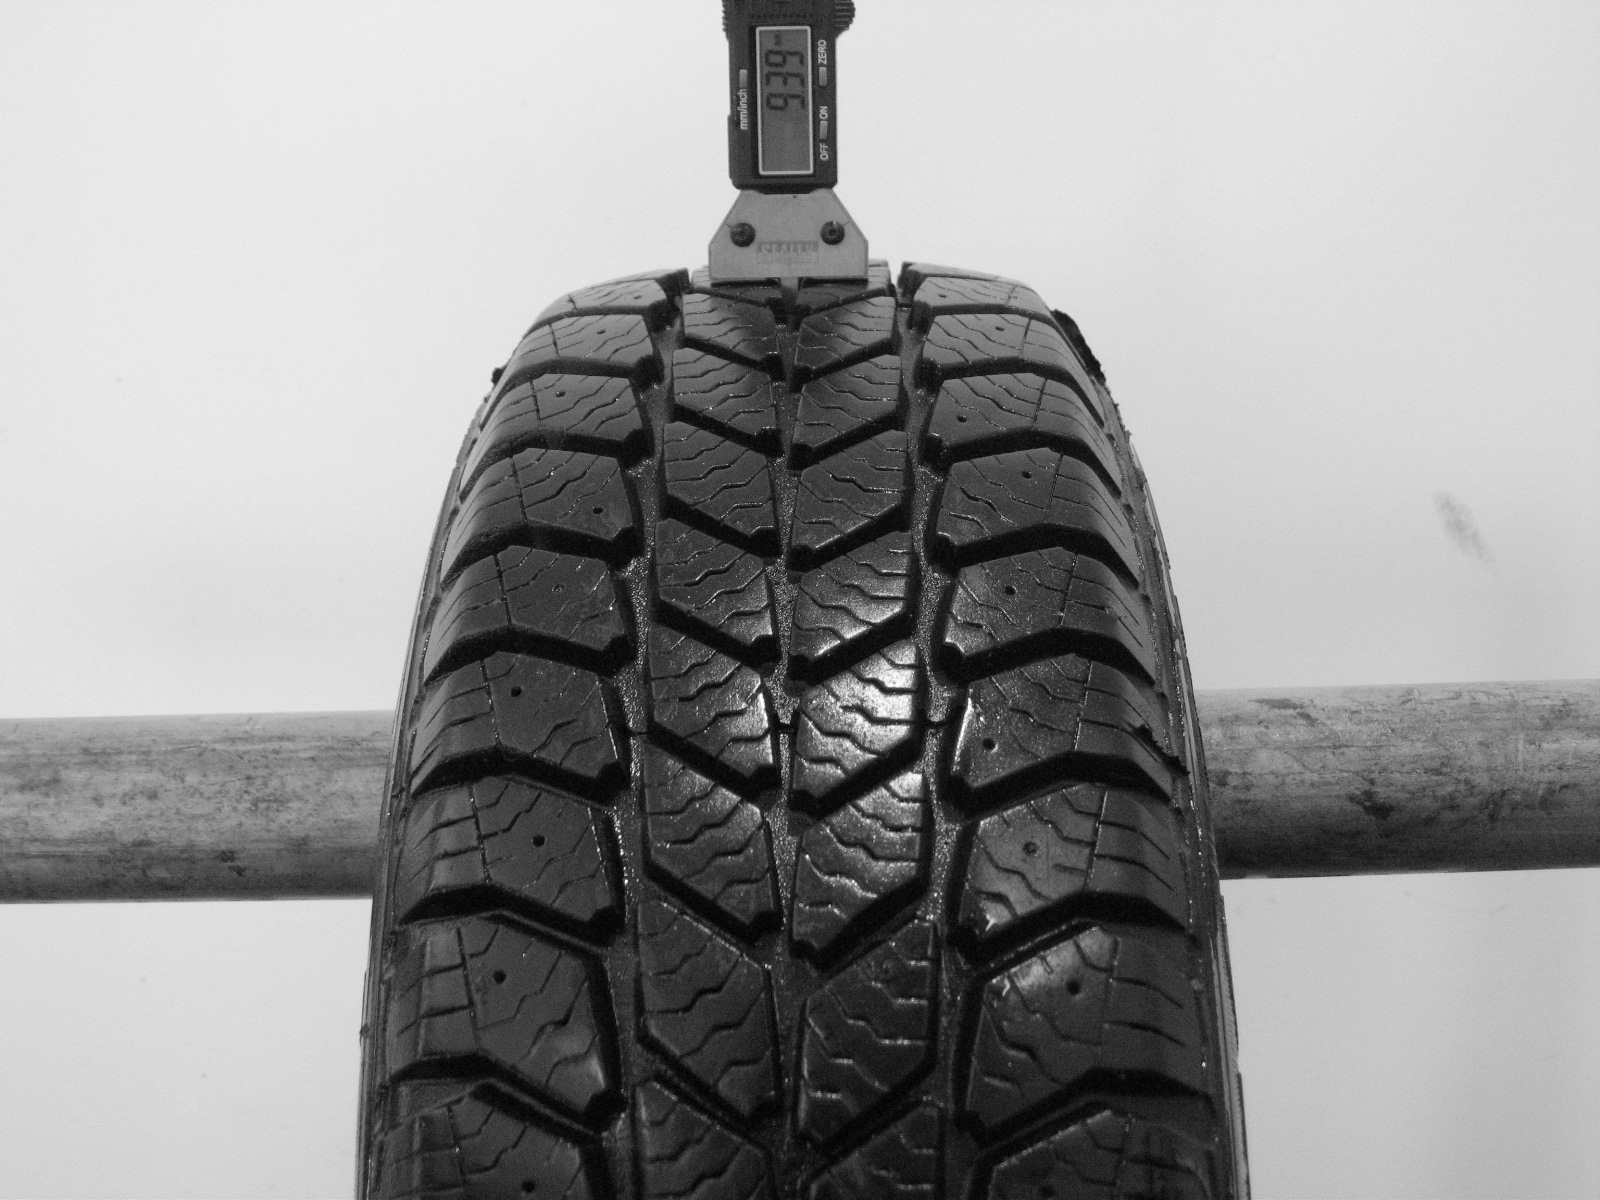 Použité-Pneu-Bazar - 195/70 R15 C GOOD YEAR CARGO ULTRA GRIP -kusovka-rezerva 3mm